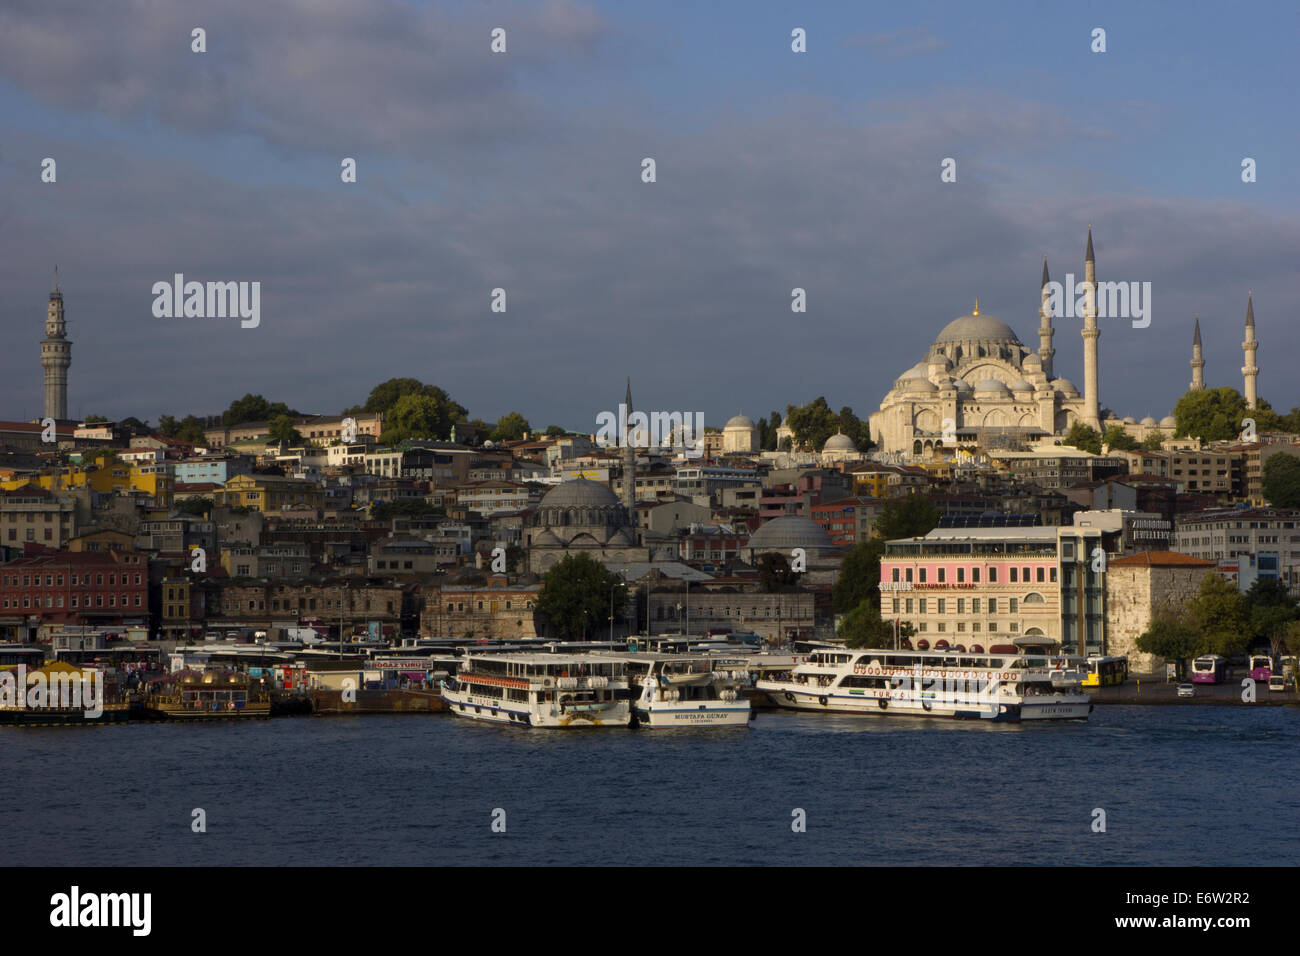 ISTAMBUL - August 30, 2014.  View of Istambul, the largest city of Turquey, from the Bosforus waterway. On August - Stock Image